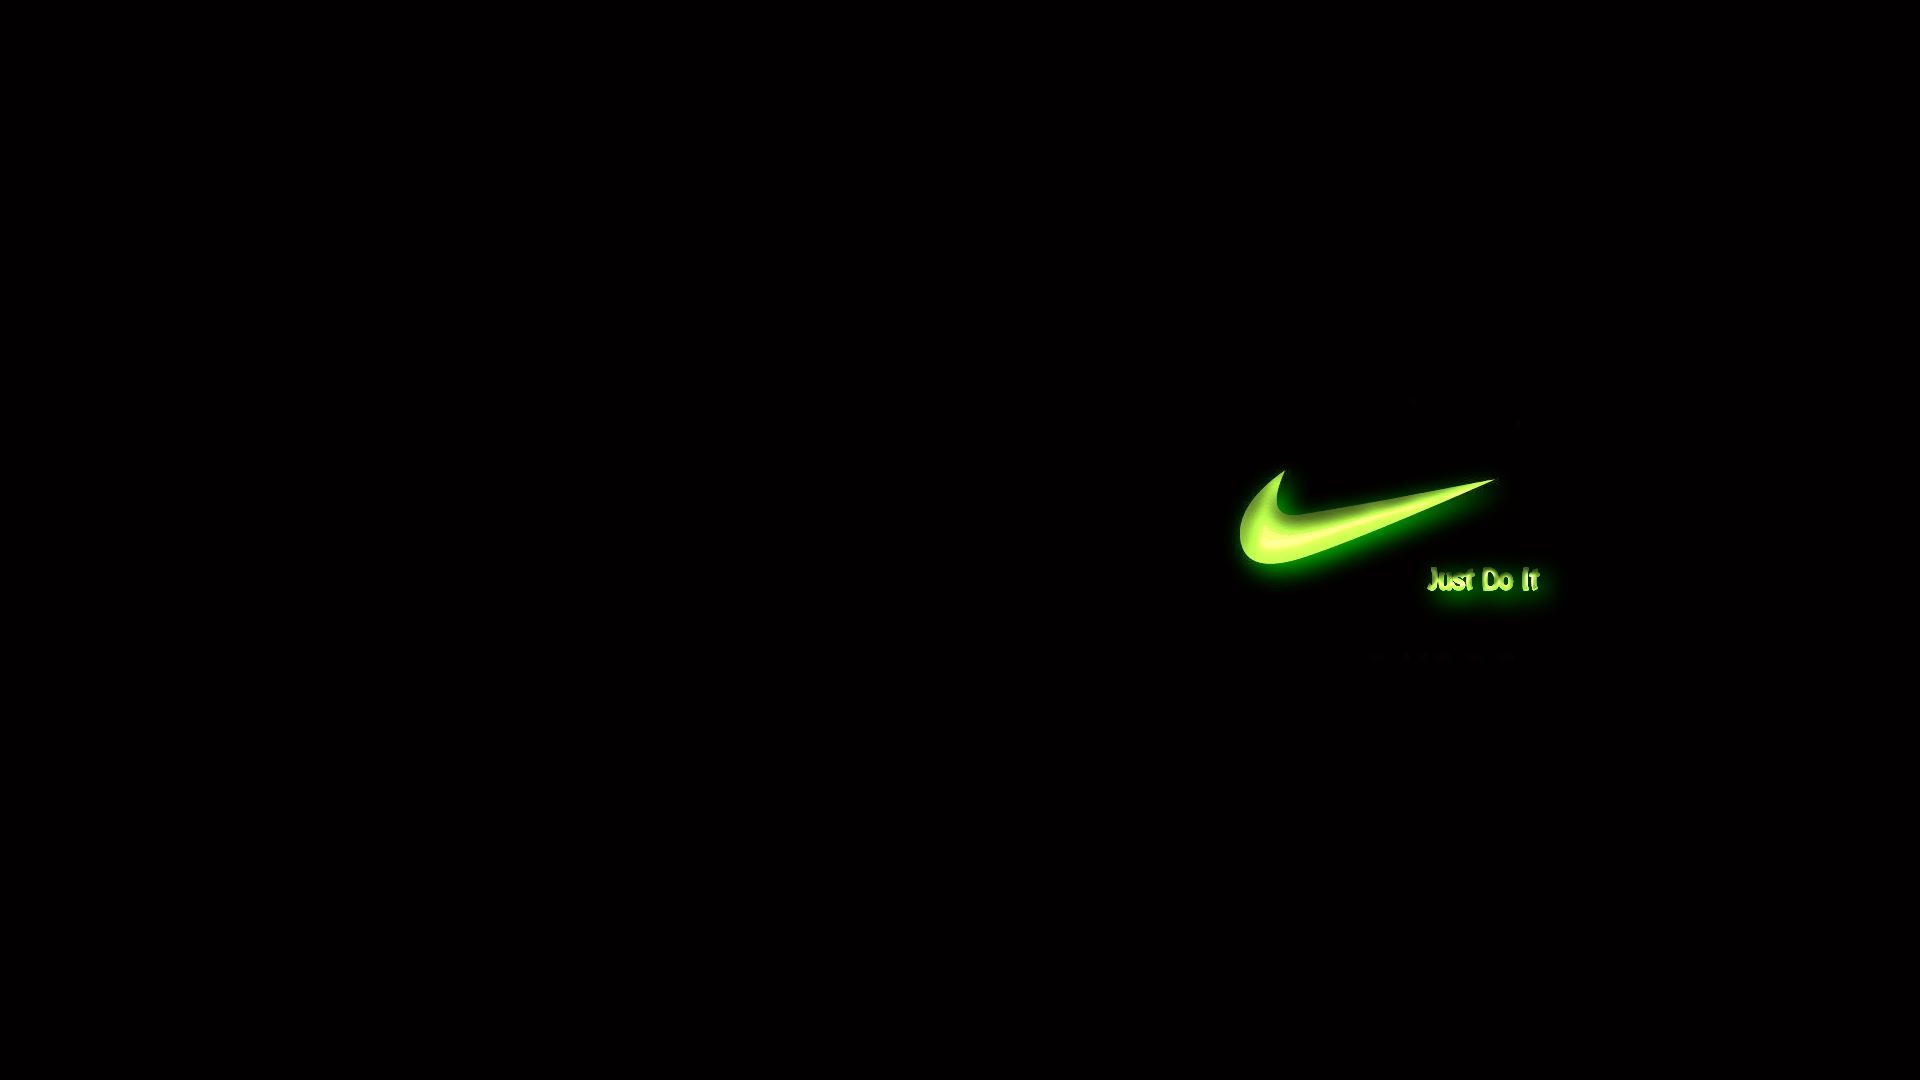 This Site Contains Information About Nike Wallpaper Desktop